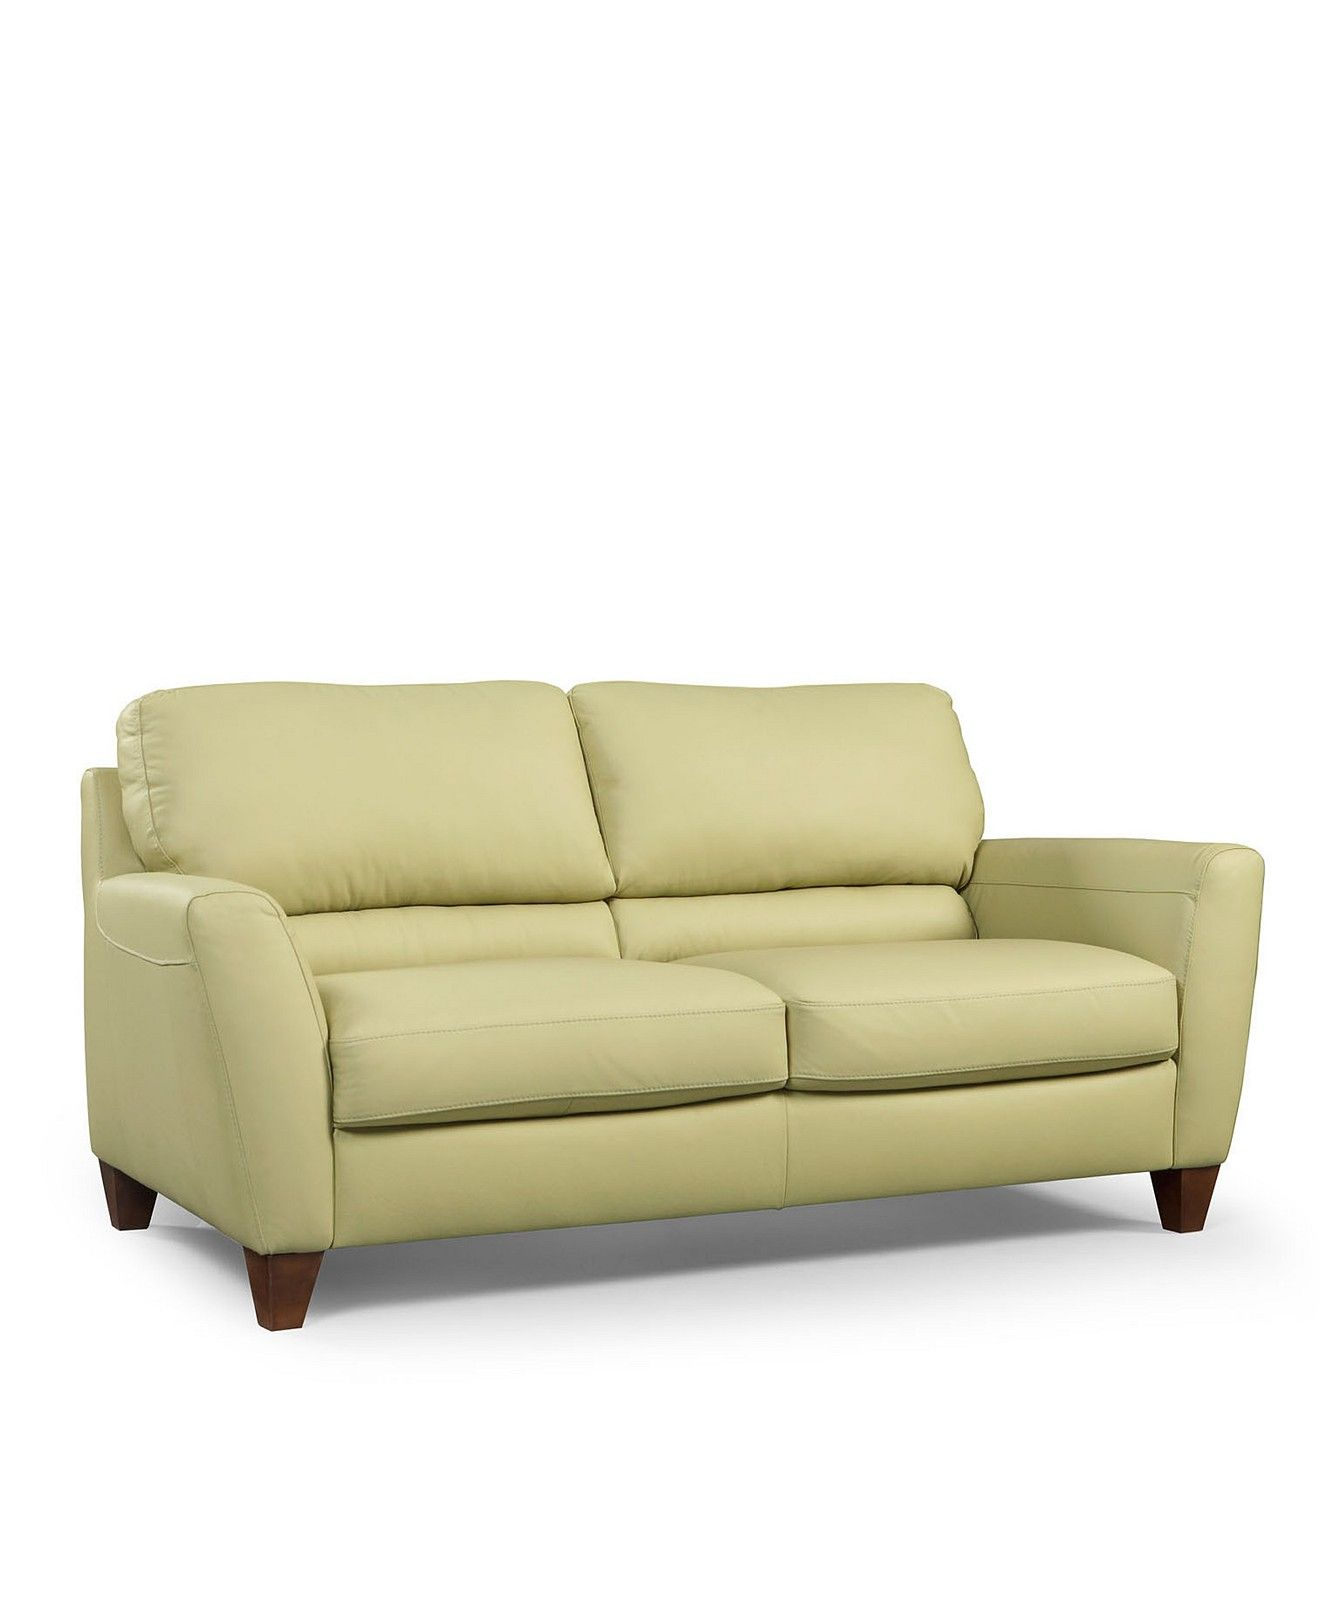 Delicieux Almafi Leather Sofa   Shop All Living Room   Furniture   Macyu0027s